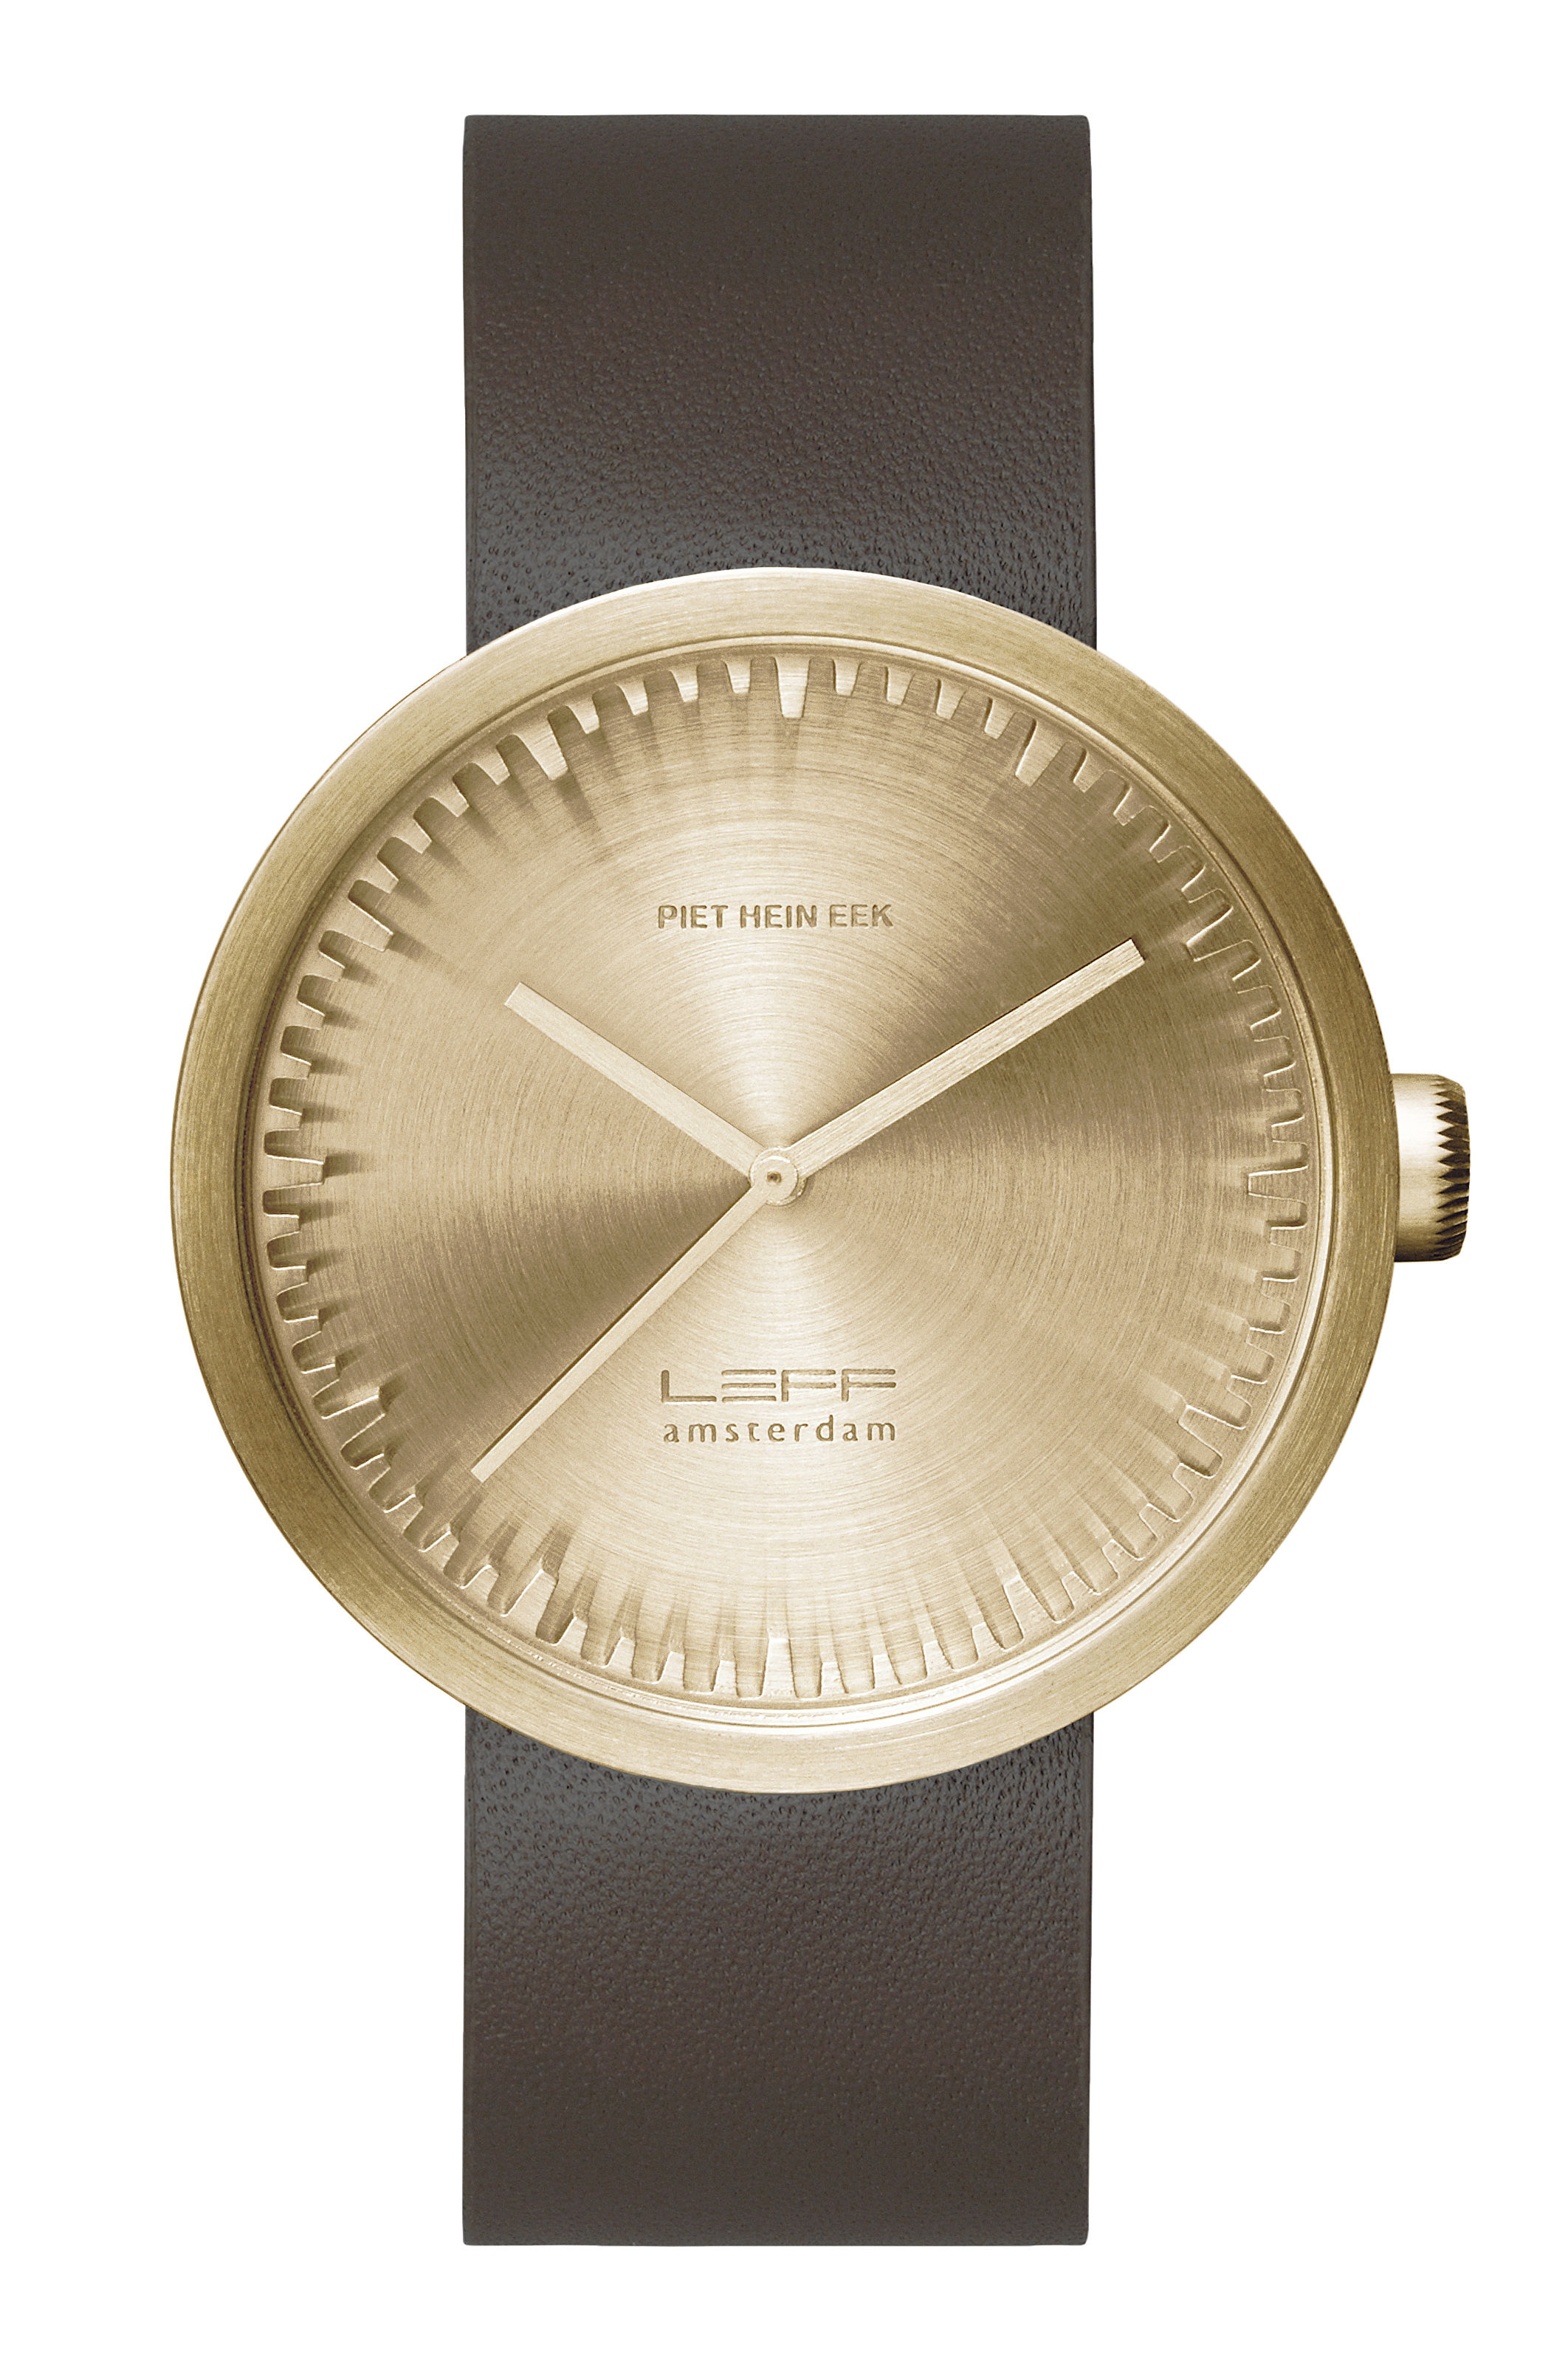 Accessories - Watches - D42 Watch - Leather wristband by LEFF amsterdam - Brass, brown - 316L brushed stainless steel, Glass, Leather